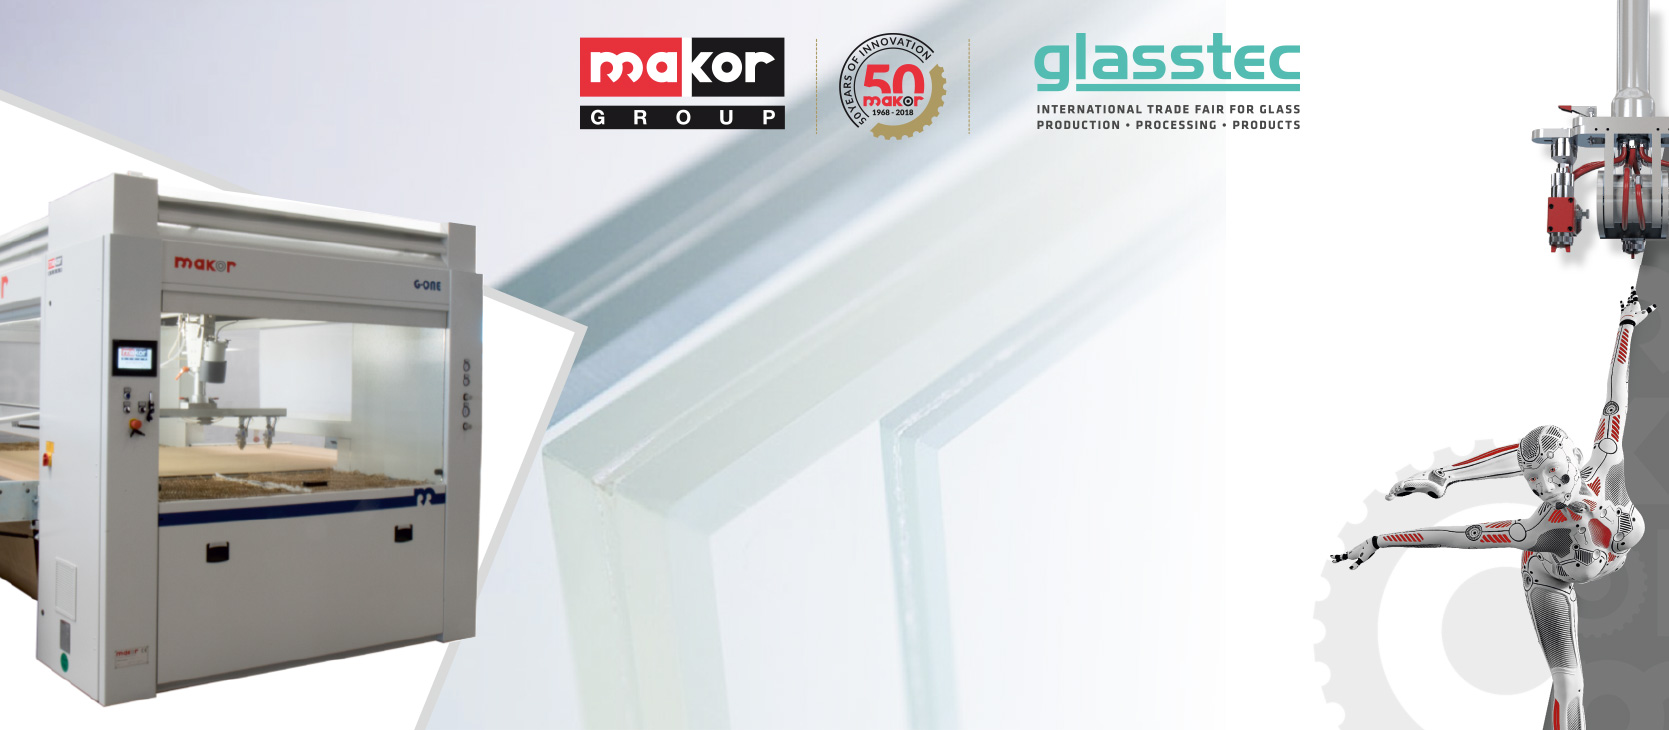 You are kindly invited to see our latest technologies for Glass Painting at Glasstec Trade Fair